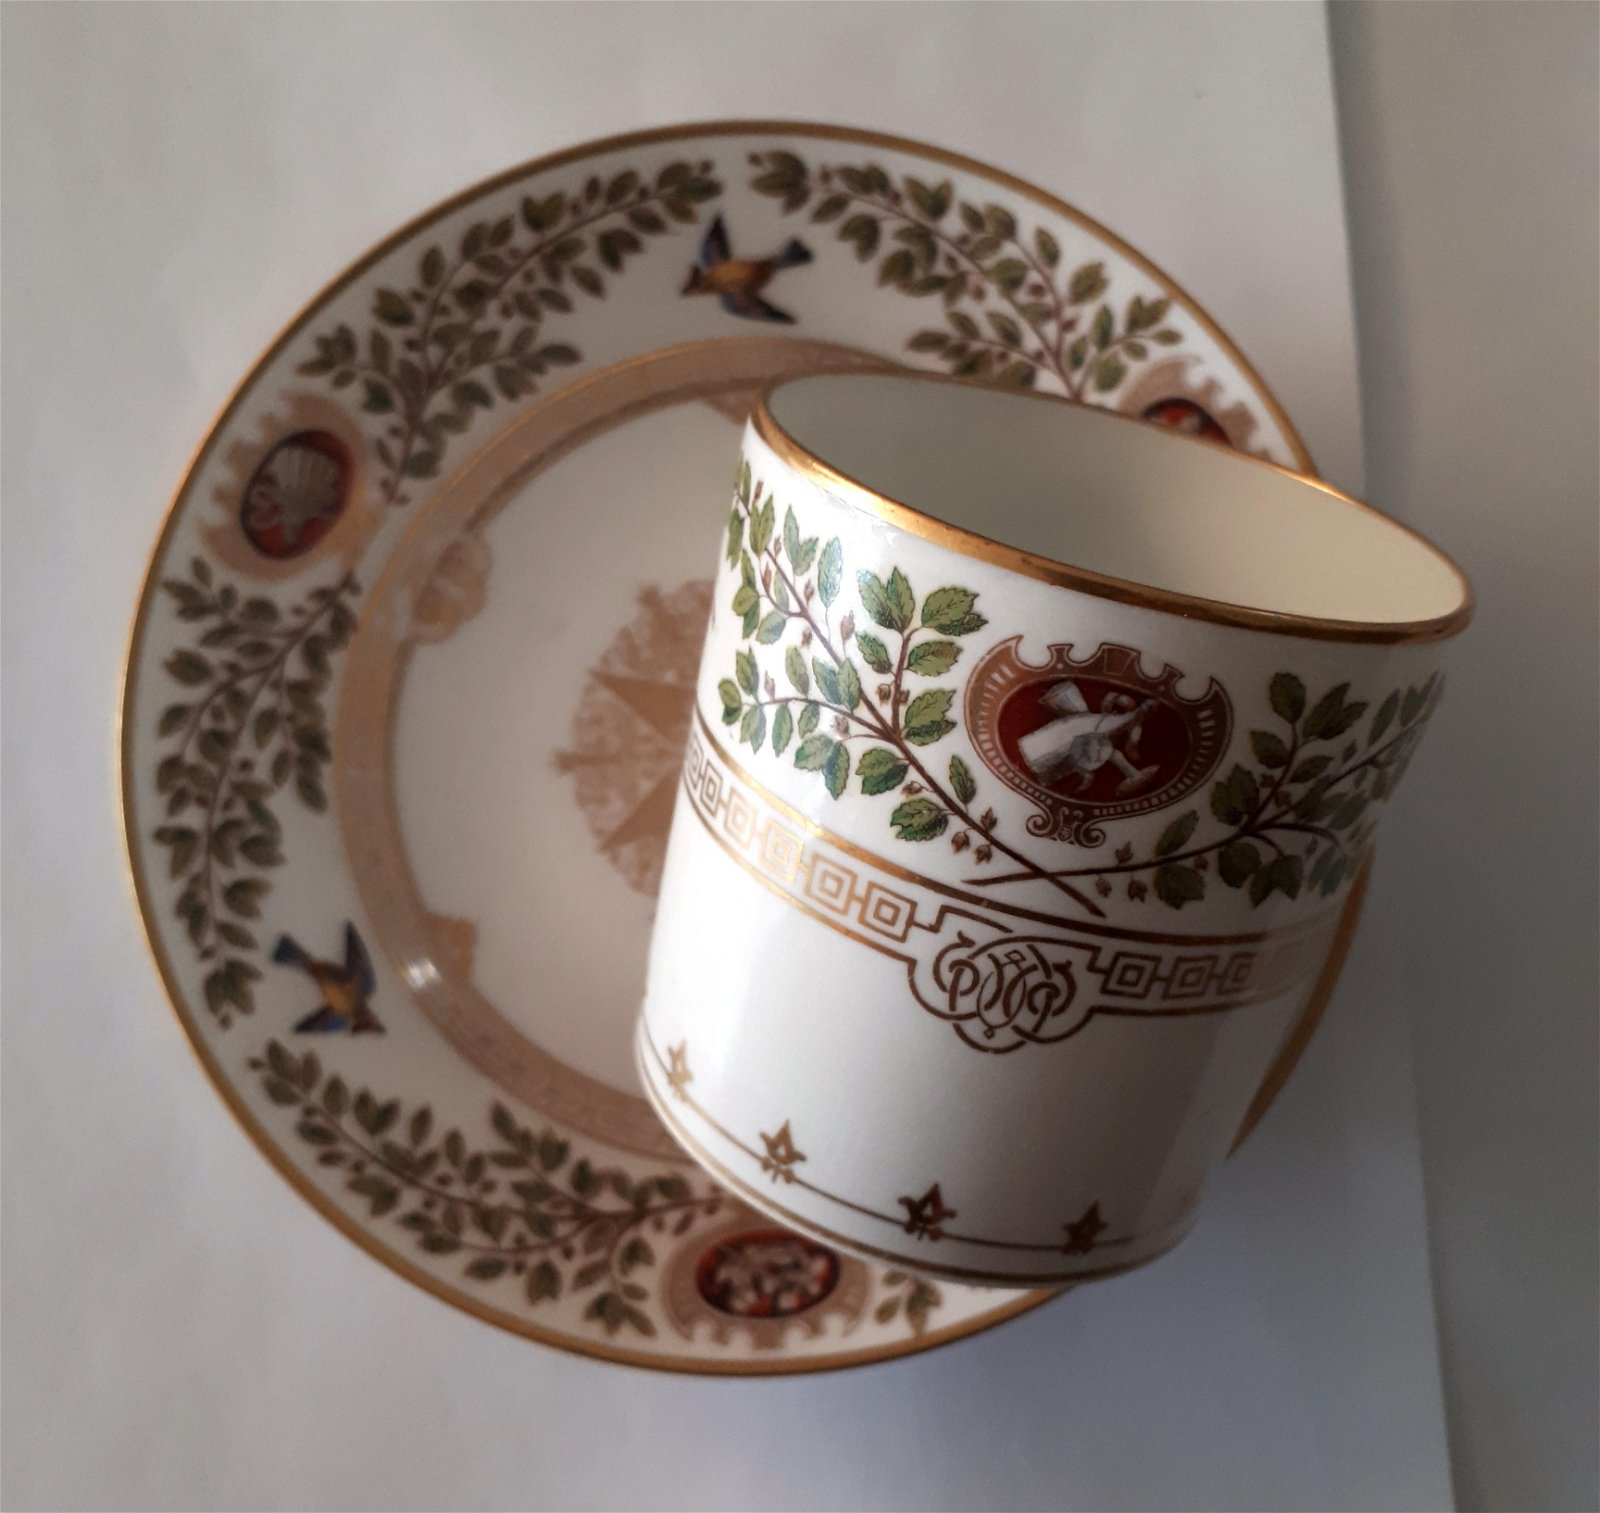 19th Century Sevres Porcelain Cup And Saucer